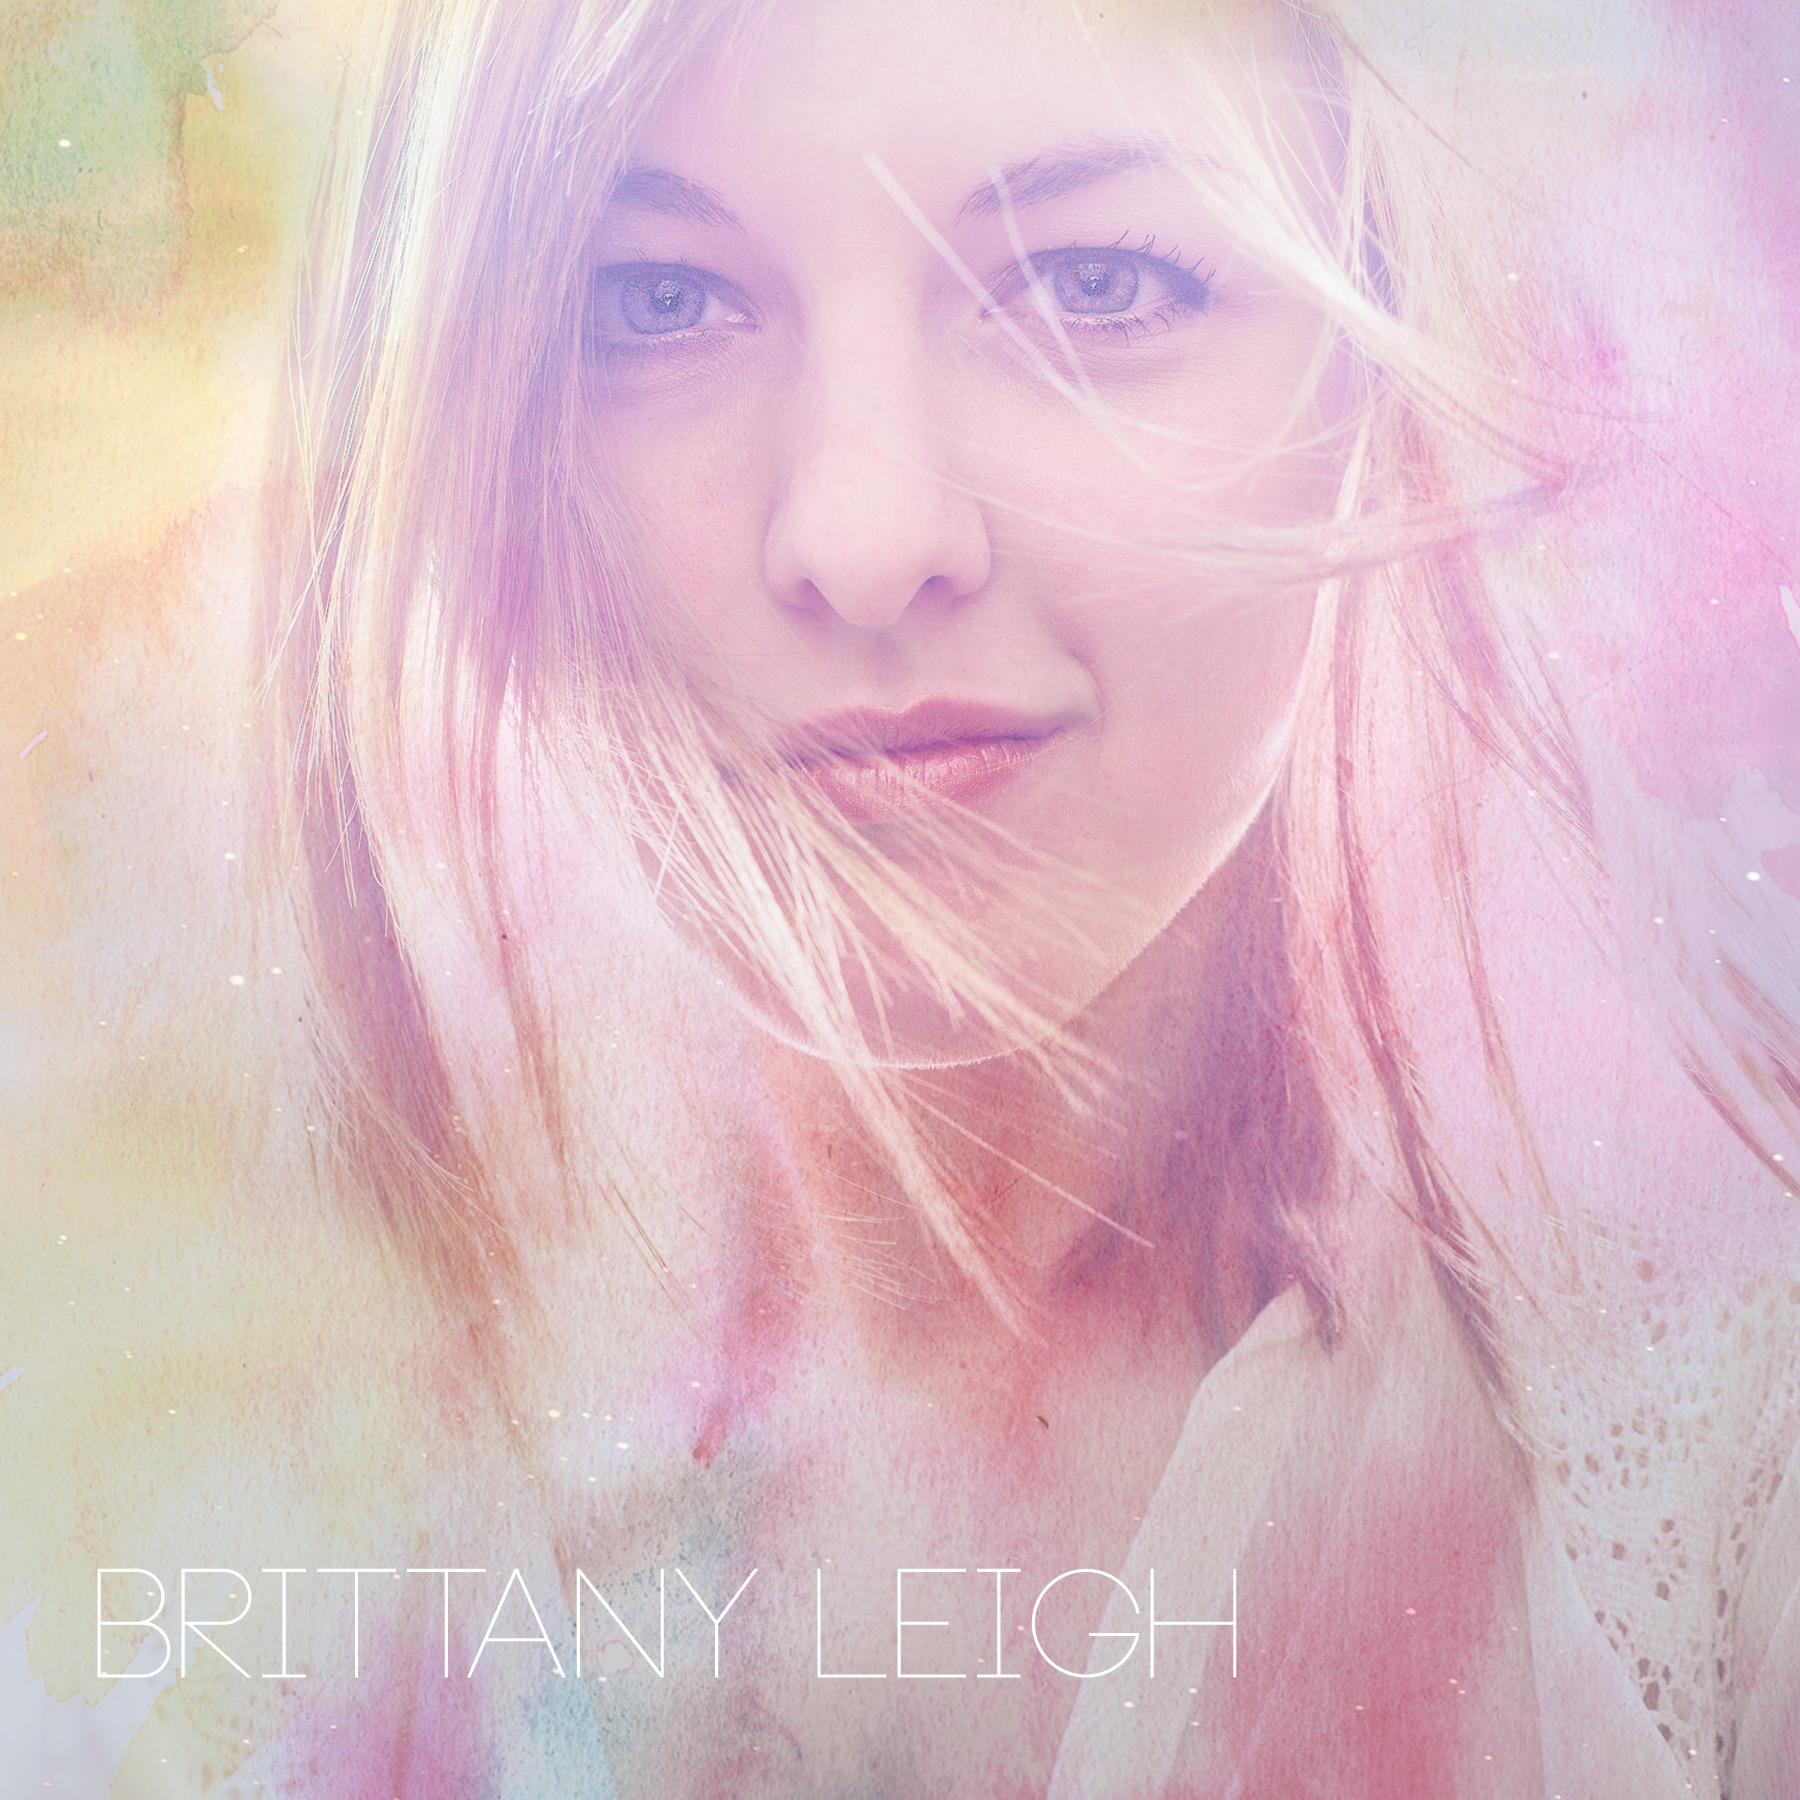 Brittany COVER.jpg